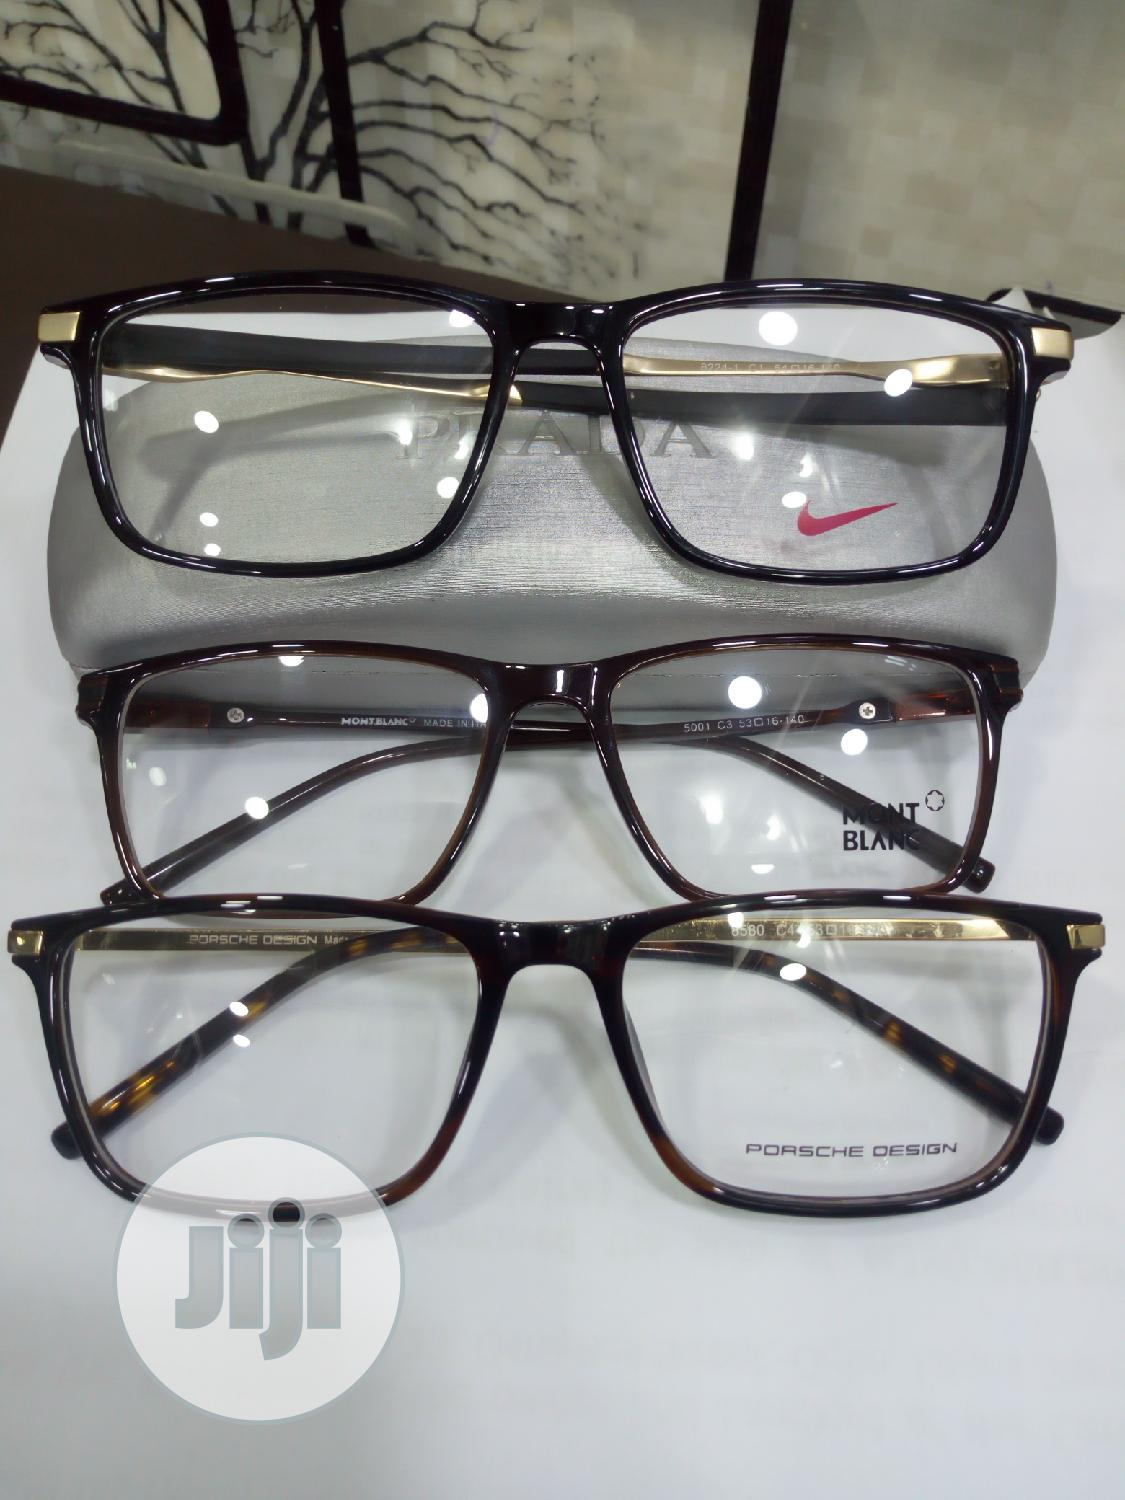 Original Nike and Porsche Frames | Clothing Accessories for sale in Ikeja, Lagos State, Nigeria